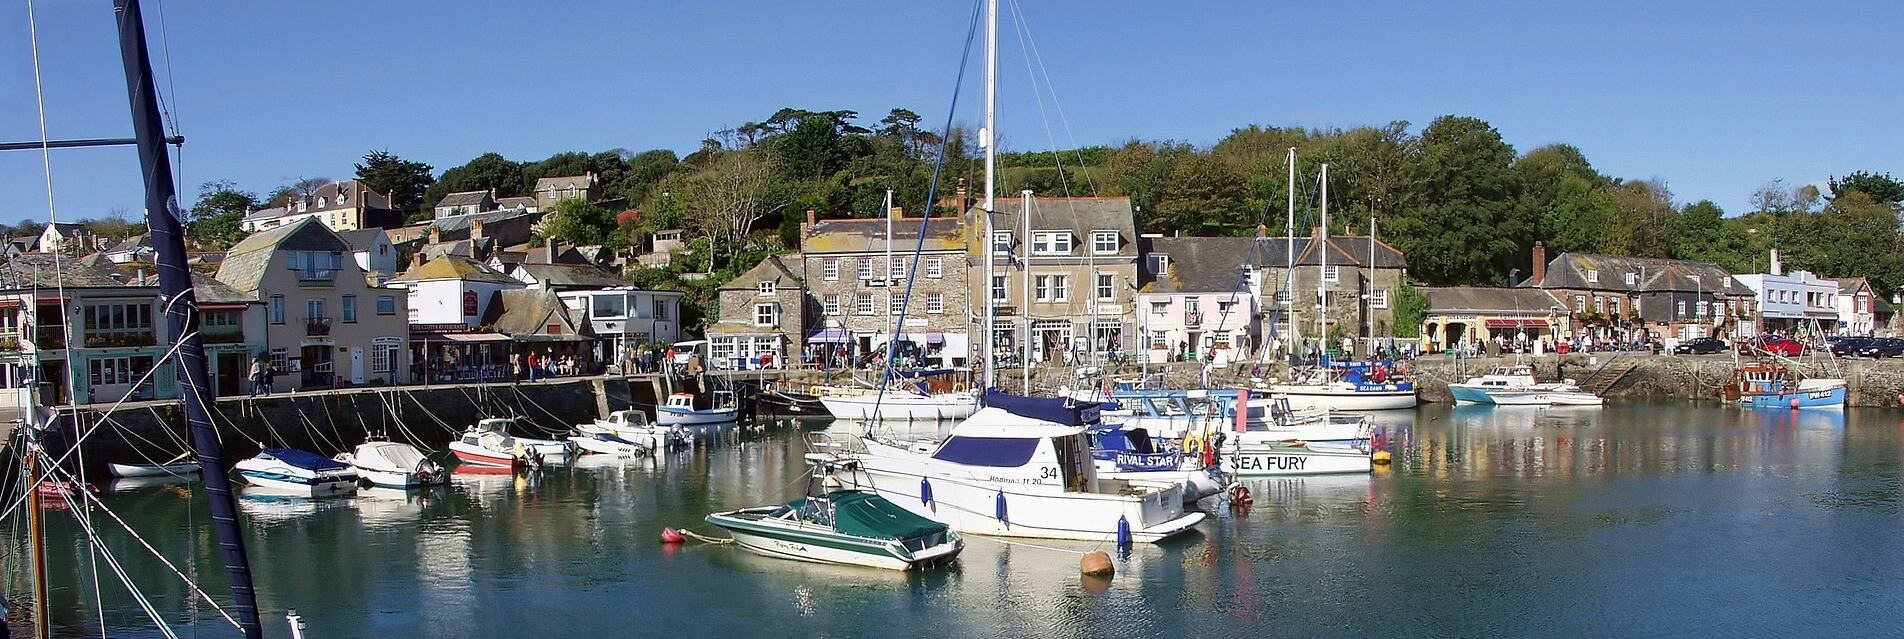 Cornwall Luxury Cottages - Handpicked Cottages in Cornwall